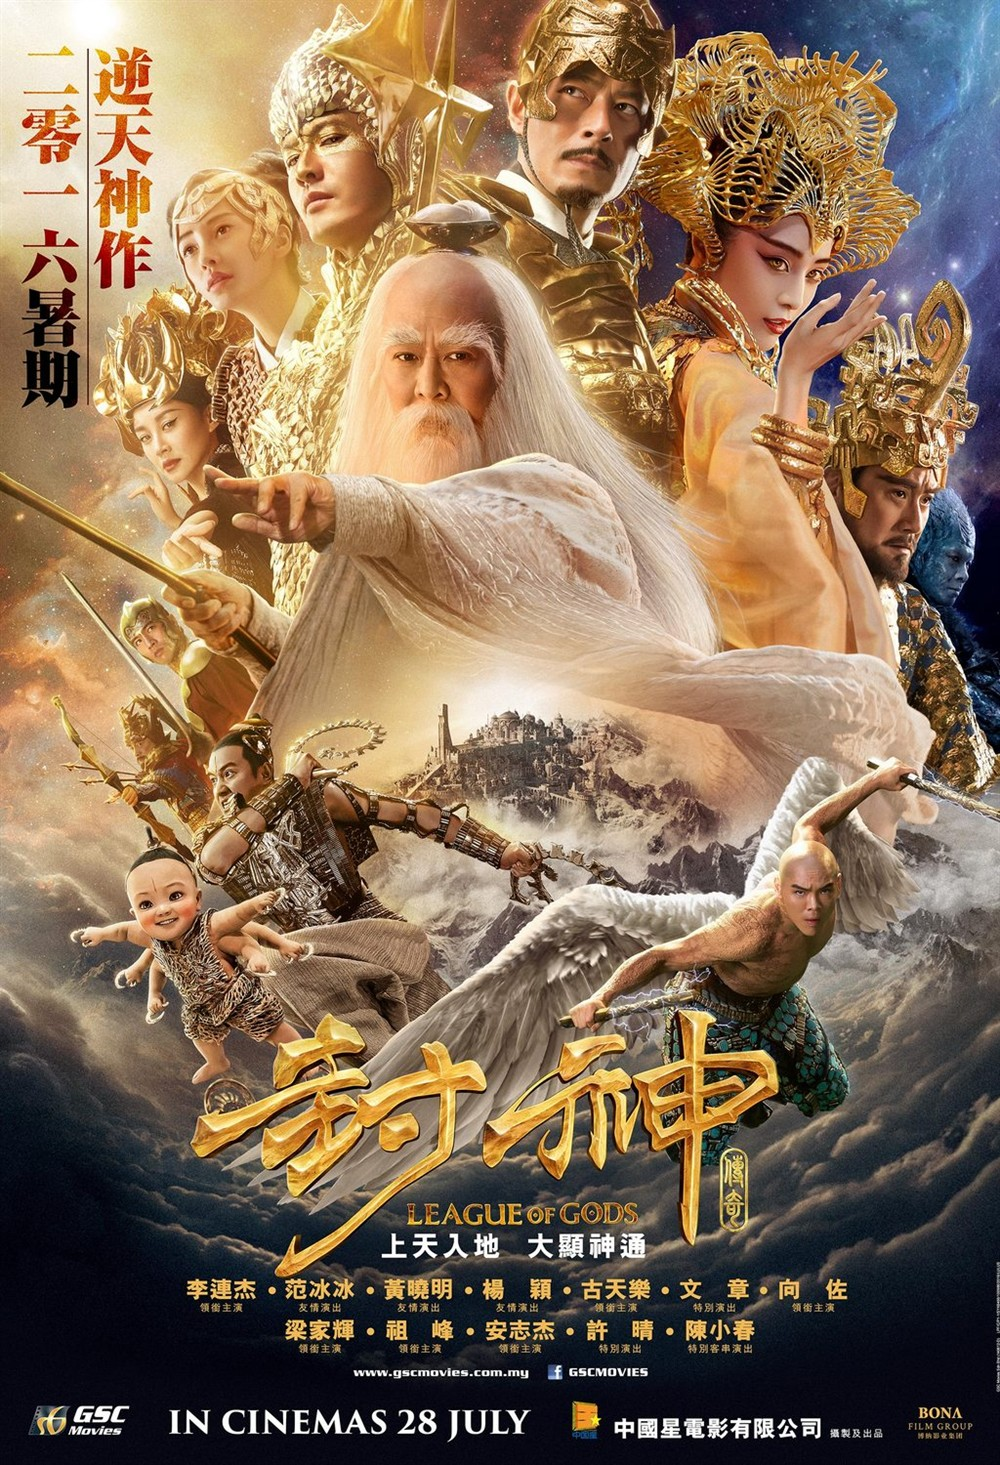 beautifully-badass-trailer-for-the-fantasy-martial-arts-film-league-of-gods-with-jet-li